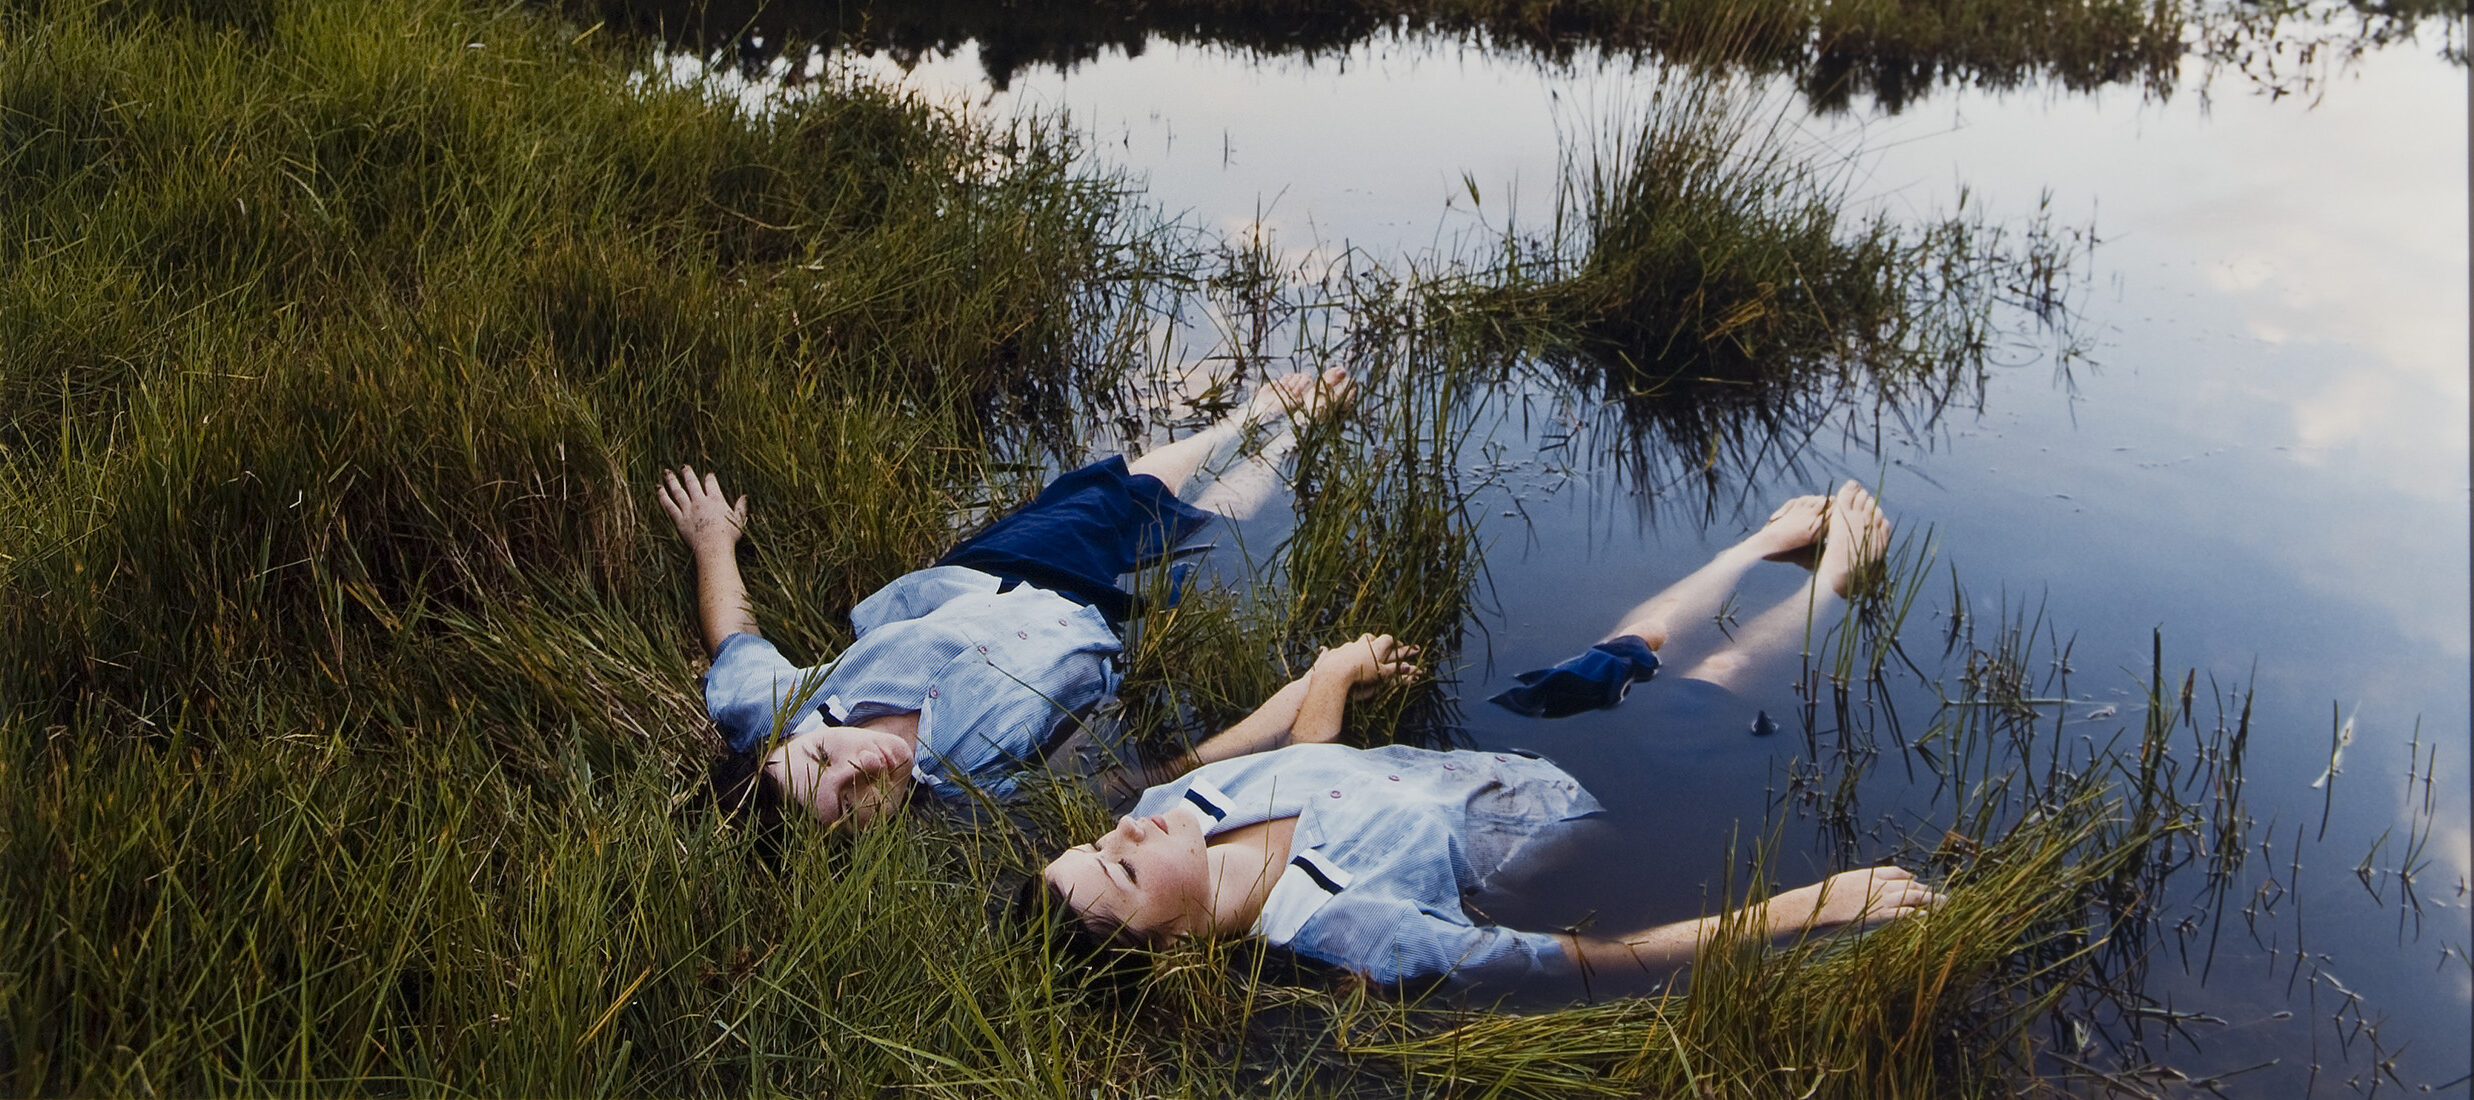 Justine Kurland, <i>Grassland Drifters</i>, 2001; Chromogenic color print, 30 x 40 in.; National Museum of Women in the Arts, Gift of Heather and Tony Podesta Collection; © Justine Kurland, Courtesy of the artist Mitchell-Innes & Nash, New York